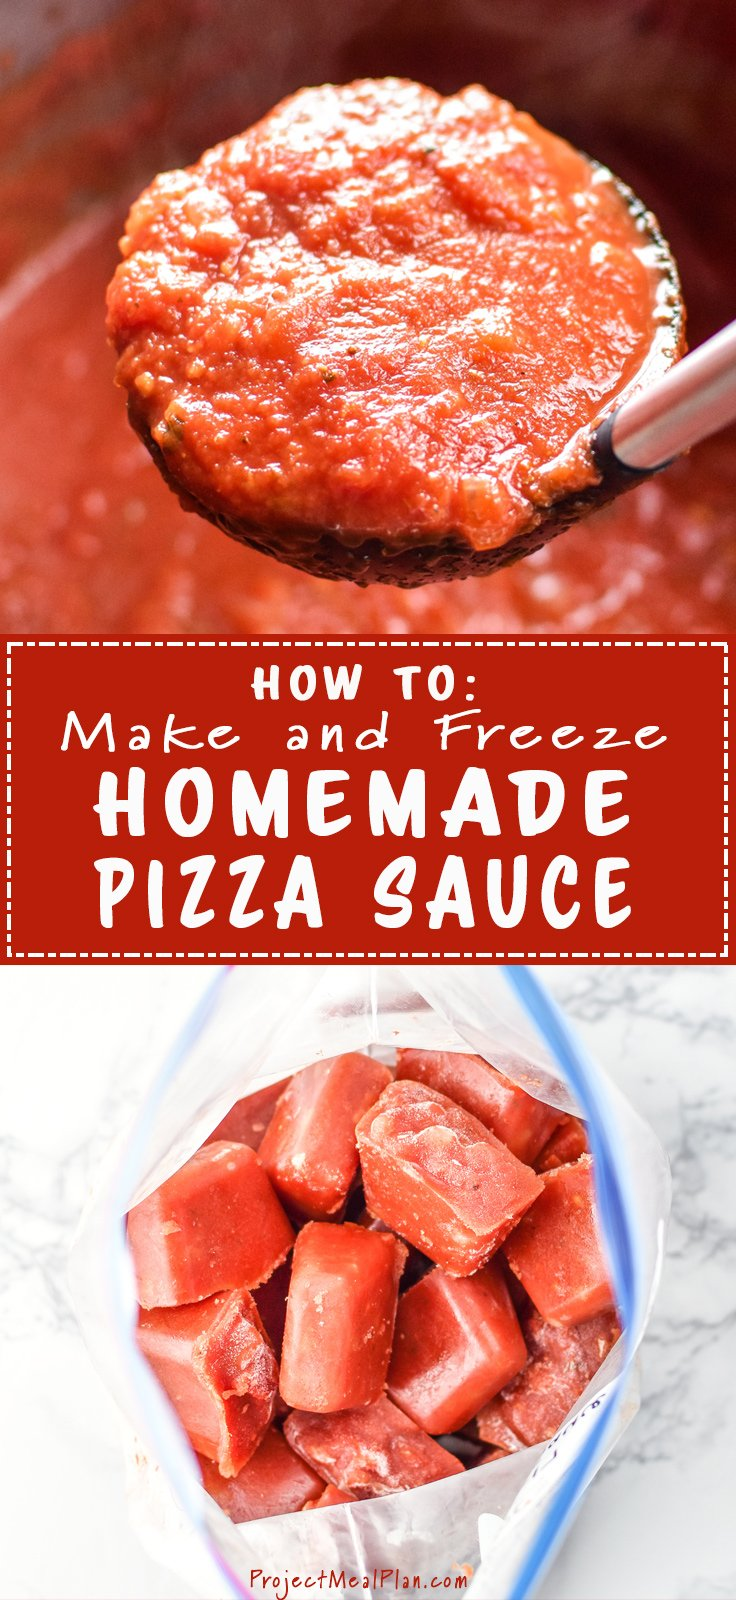 How to Make and Freeze Homemade Pizza Sauce - Big batch pizza sauce recipe to prep so you can have homemade pizza sauce in 10 minutes, anytime! - ProjectMealPlan.com